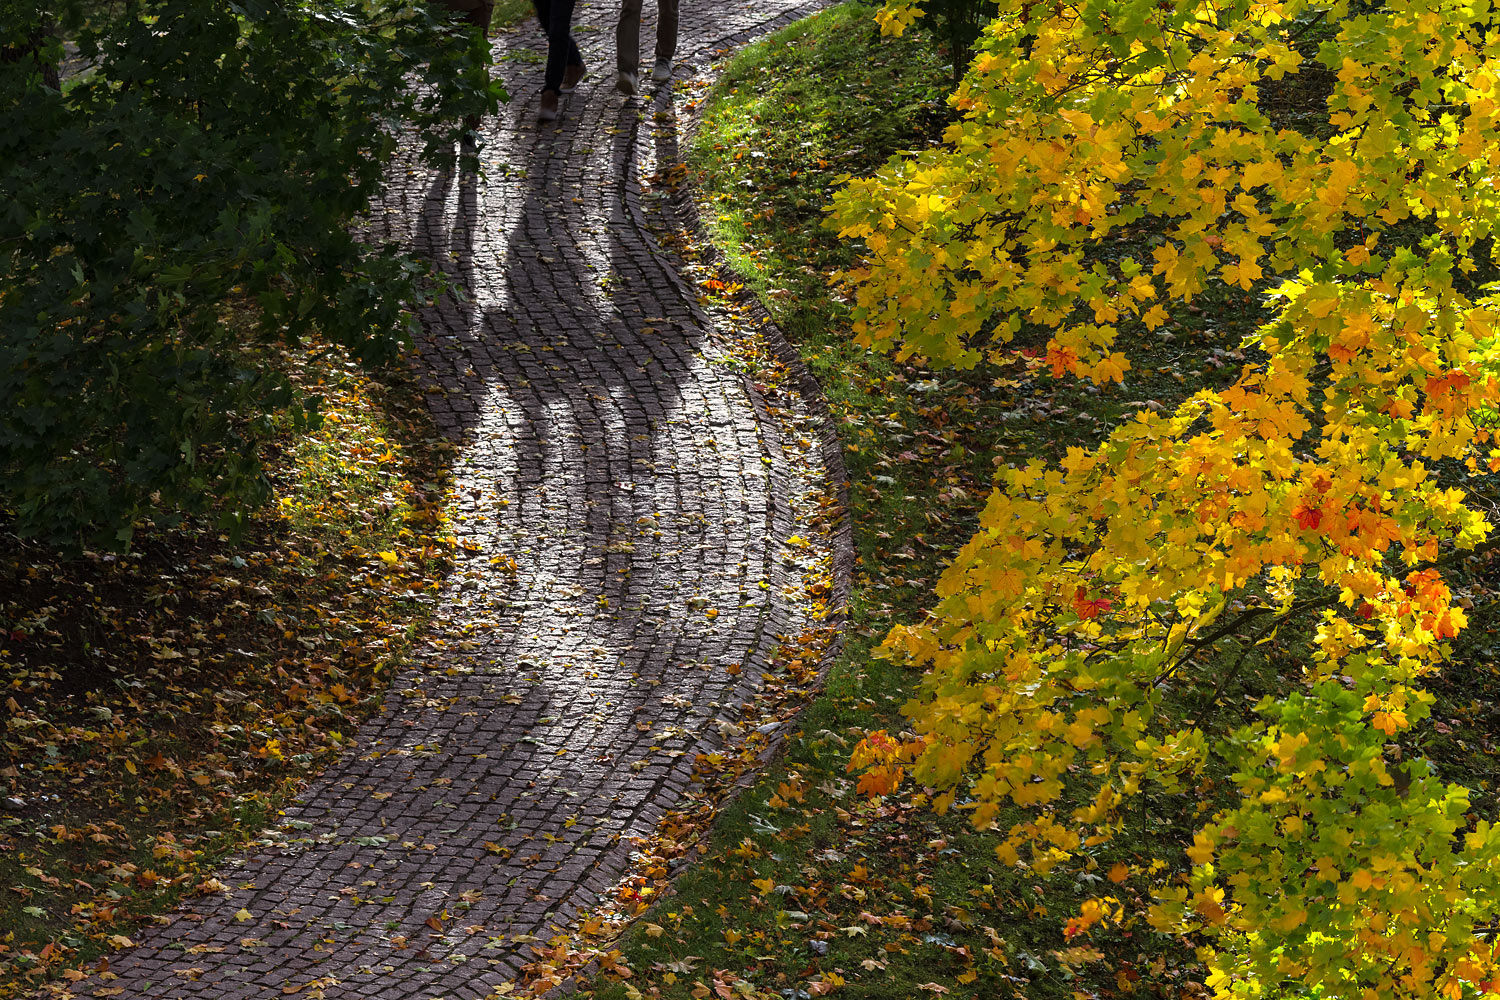 October Foliage and Shadows of Three Persons  Approaching on a Cobblestone Path